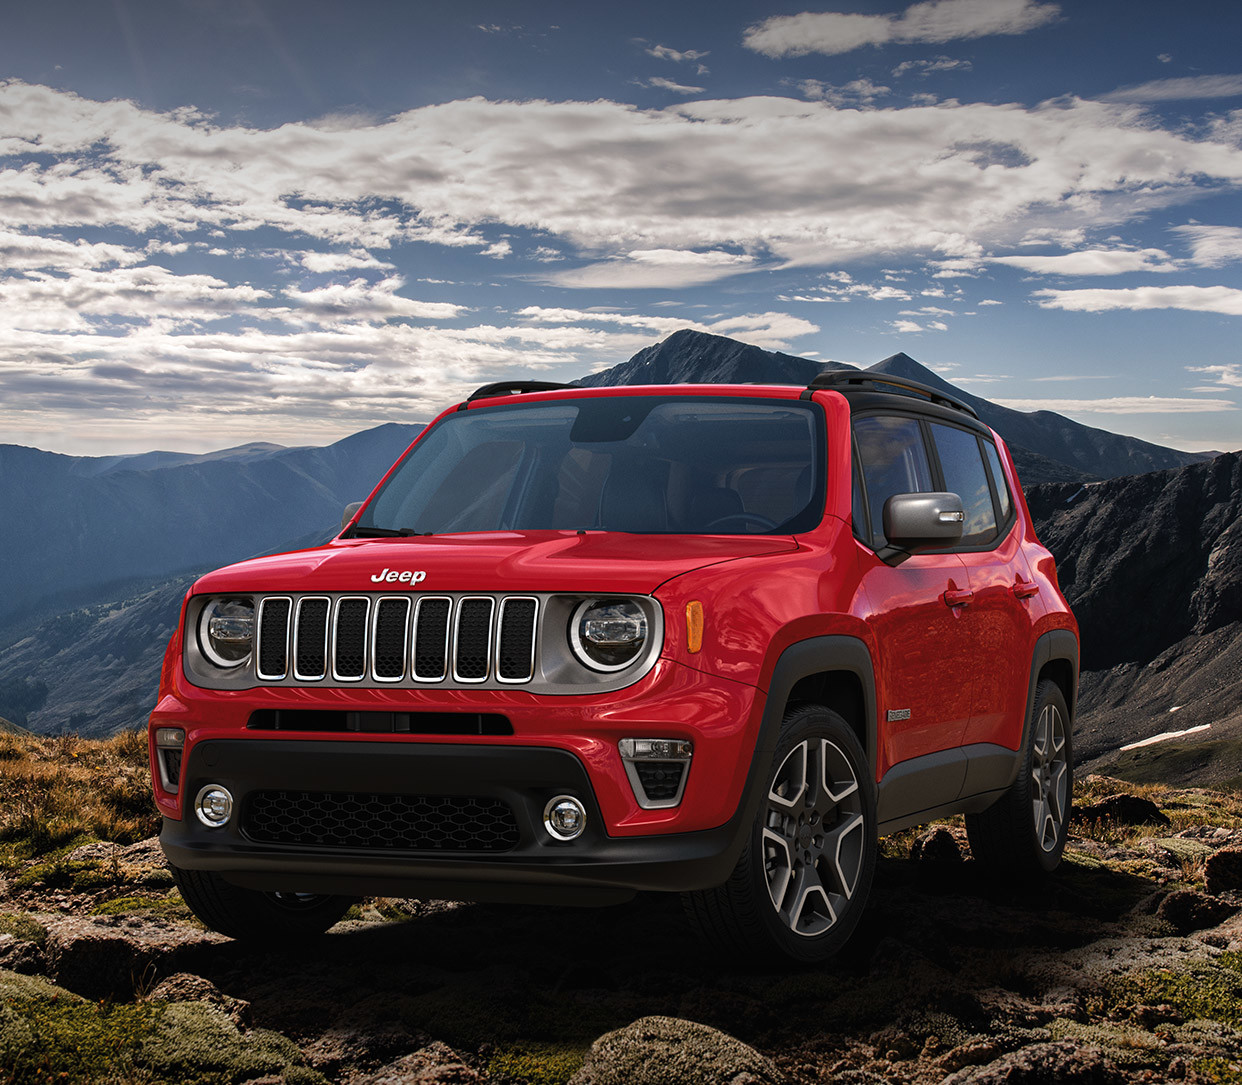 Front view of 2020 Jeep Renegade parked outdoors by mountains